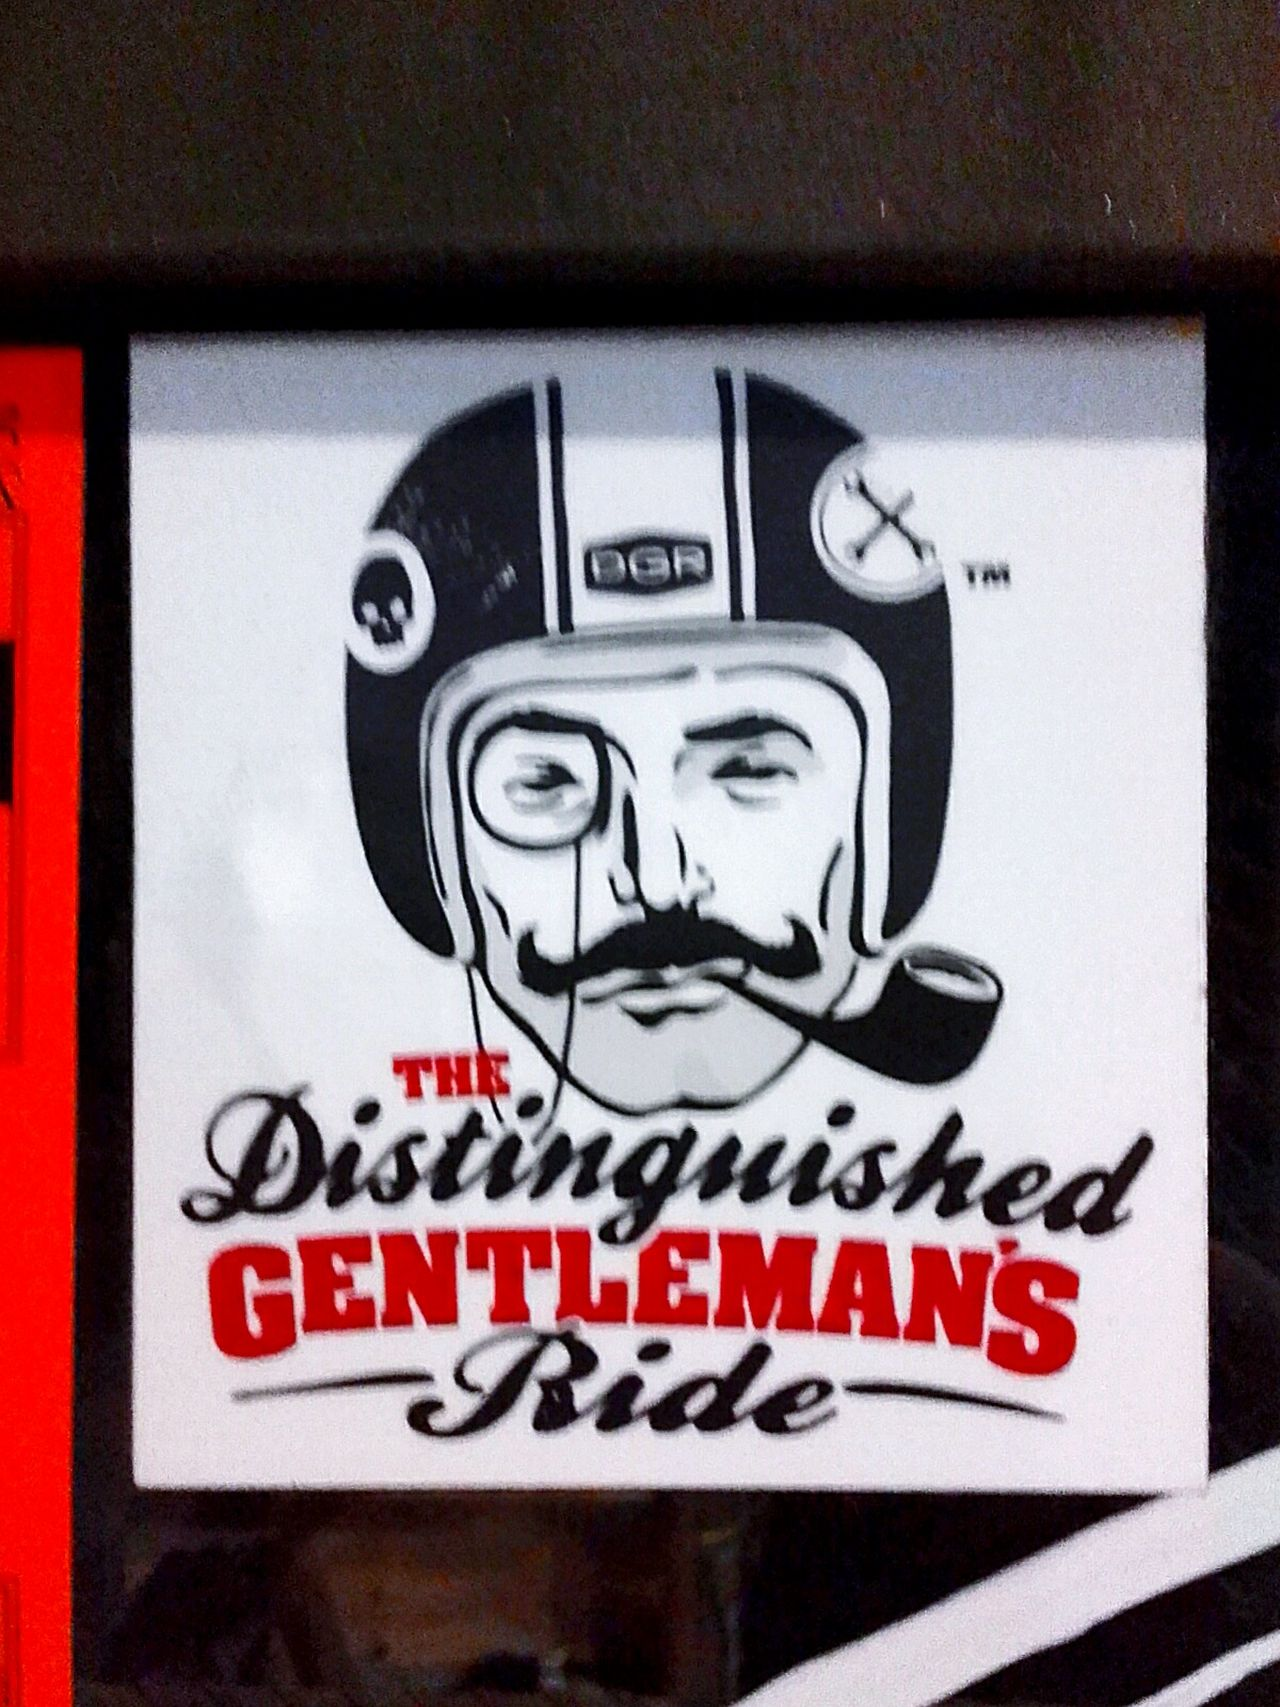 Sign Signs The Distinguished Gentleman's Ride Signs_collection Signage SignSignEverywhereASign Signstalkers Signporn Signs, Signs, & More Signs SIGN. Sign, Sign, Everywhere A Sign Motorcycles Motorbikes Motorcycle Motorbike SignsSignsAndMoreSigns Signs & More Signs Signs Signs Everywhere Signs SignHunters Sign Hunters Black Red And White Smoking A Pipe TheDistinguishedGentleman'sRide Distinguishedgentlemansride Stickerwall